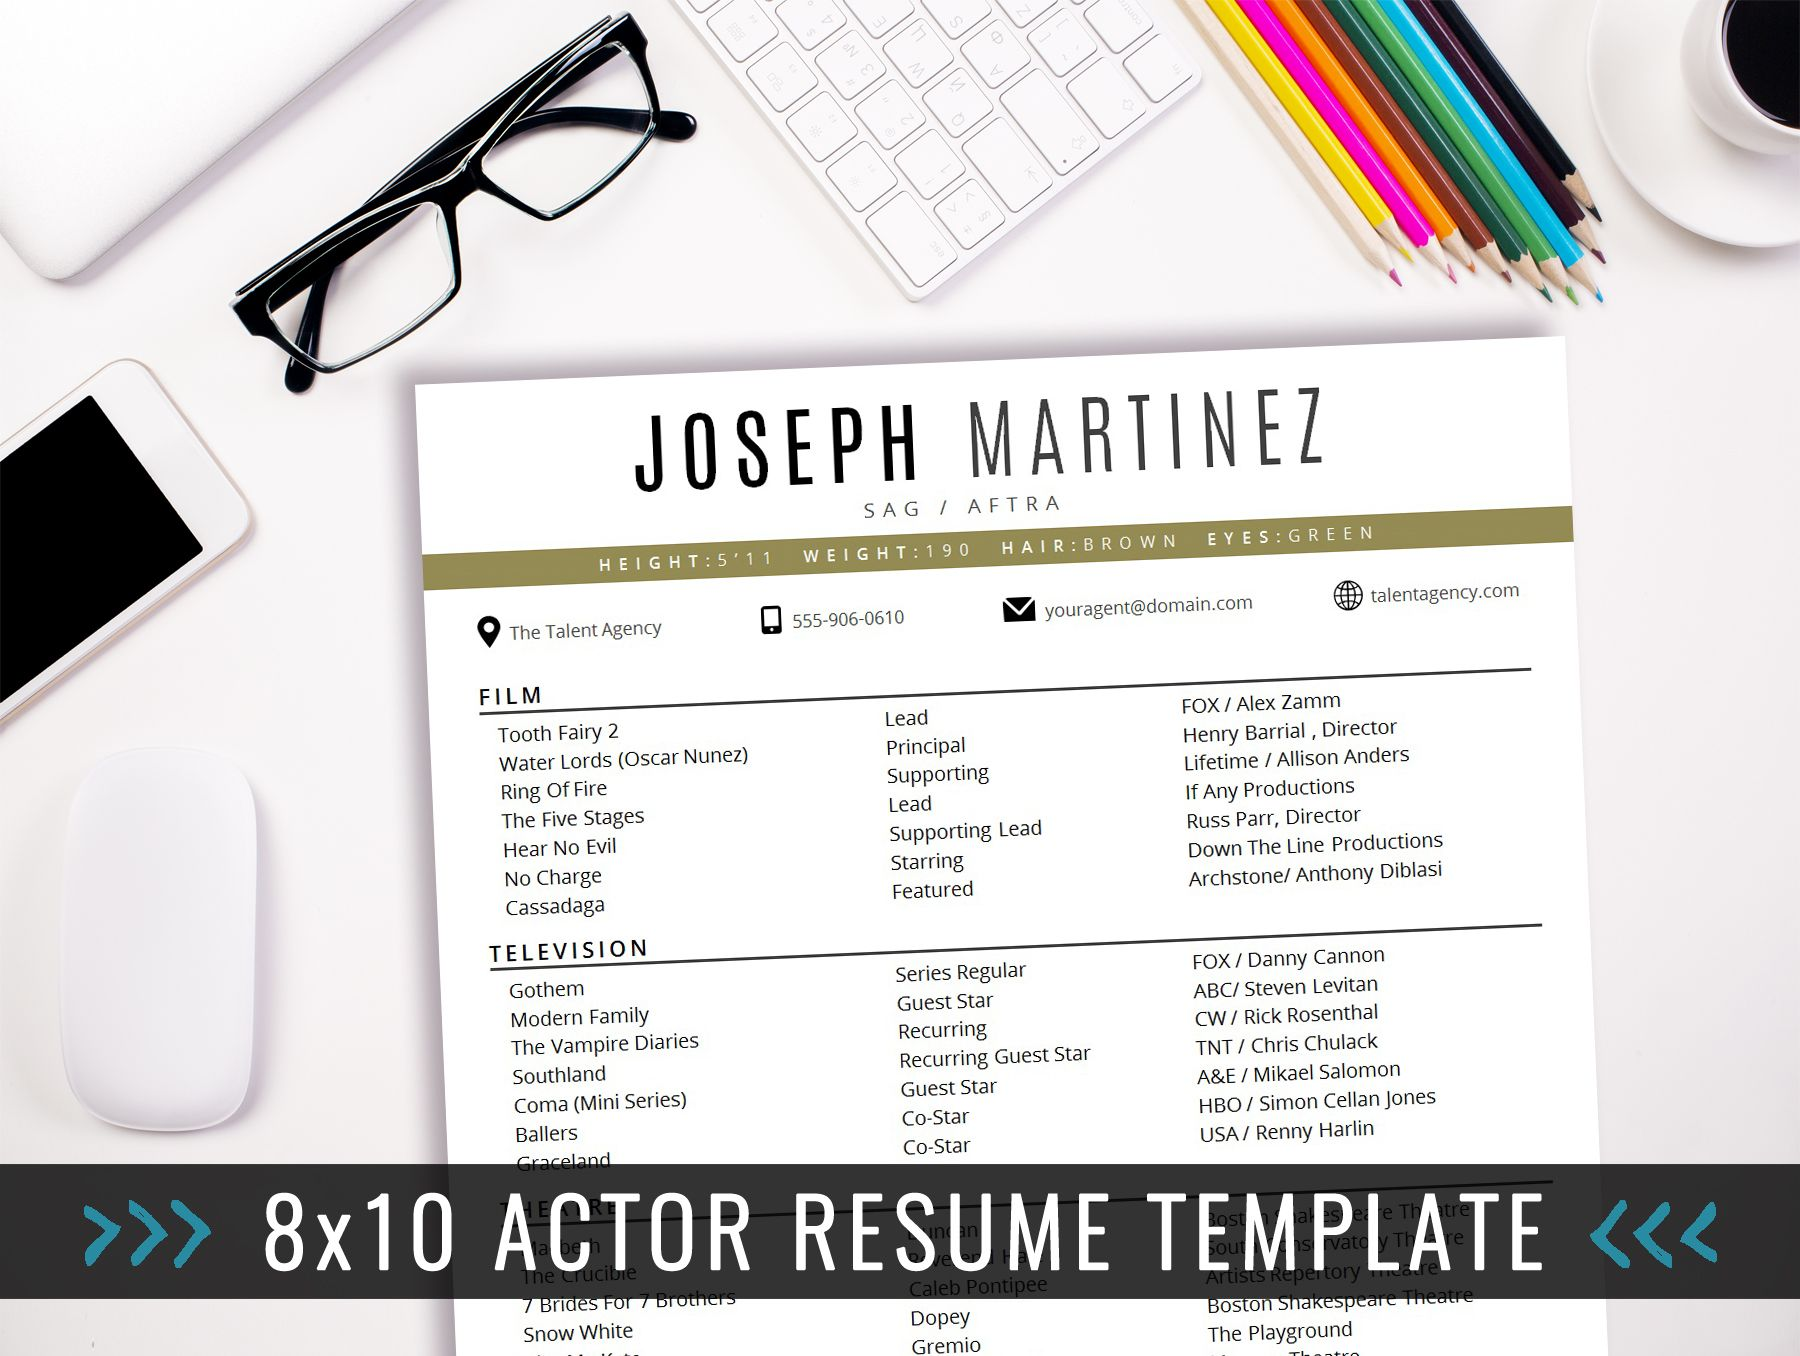 Acting Resume Format 8X10 Actor Resume Template  8X10 Actor Resume Template  Instant